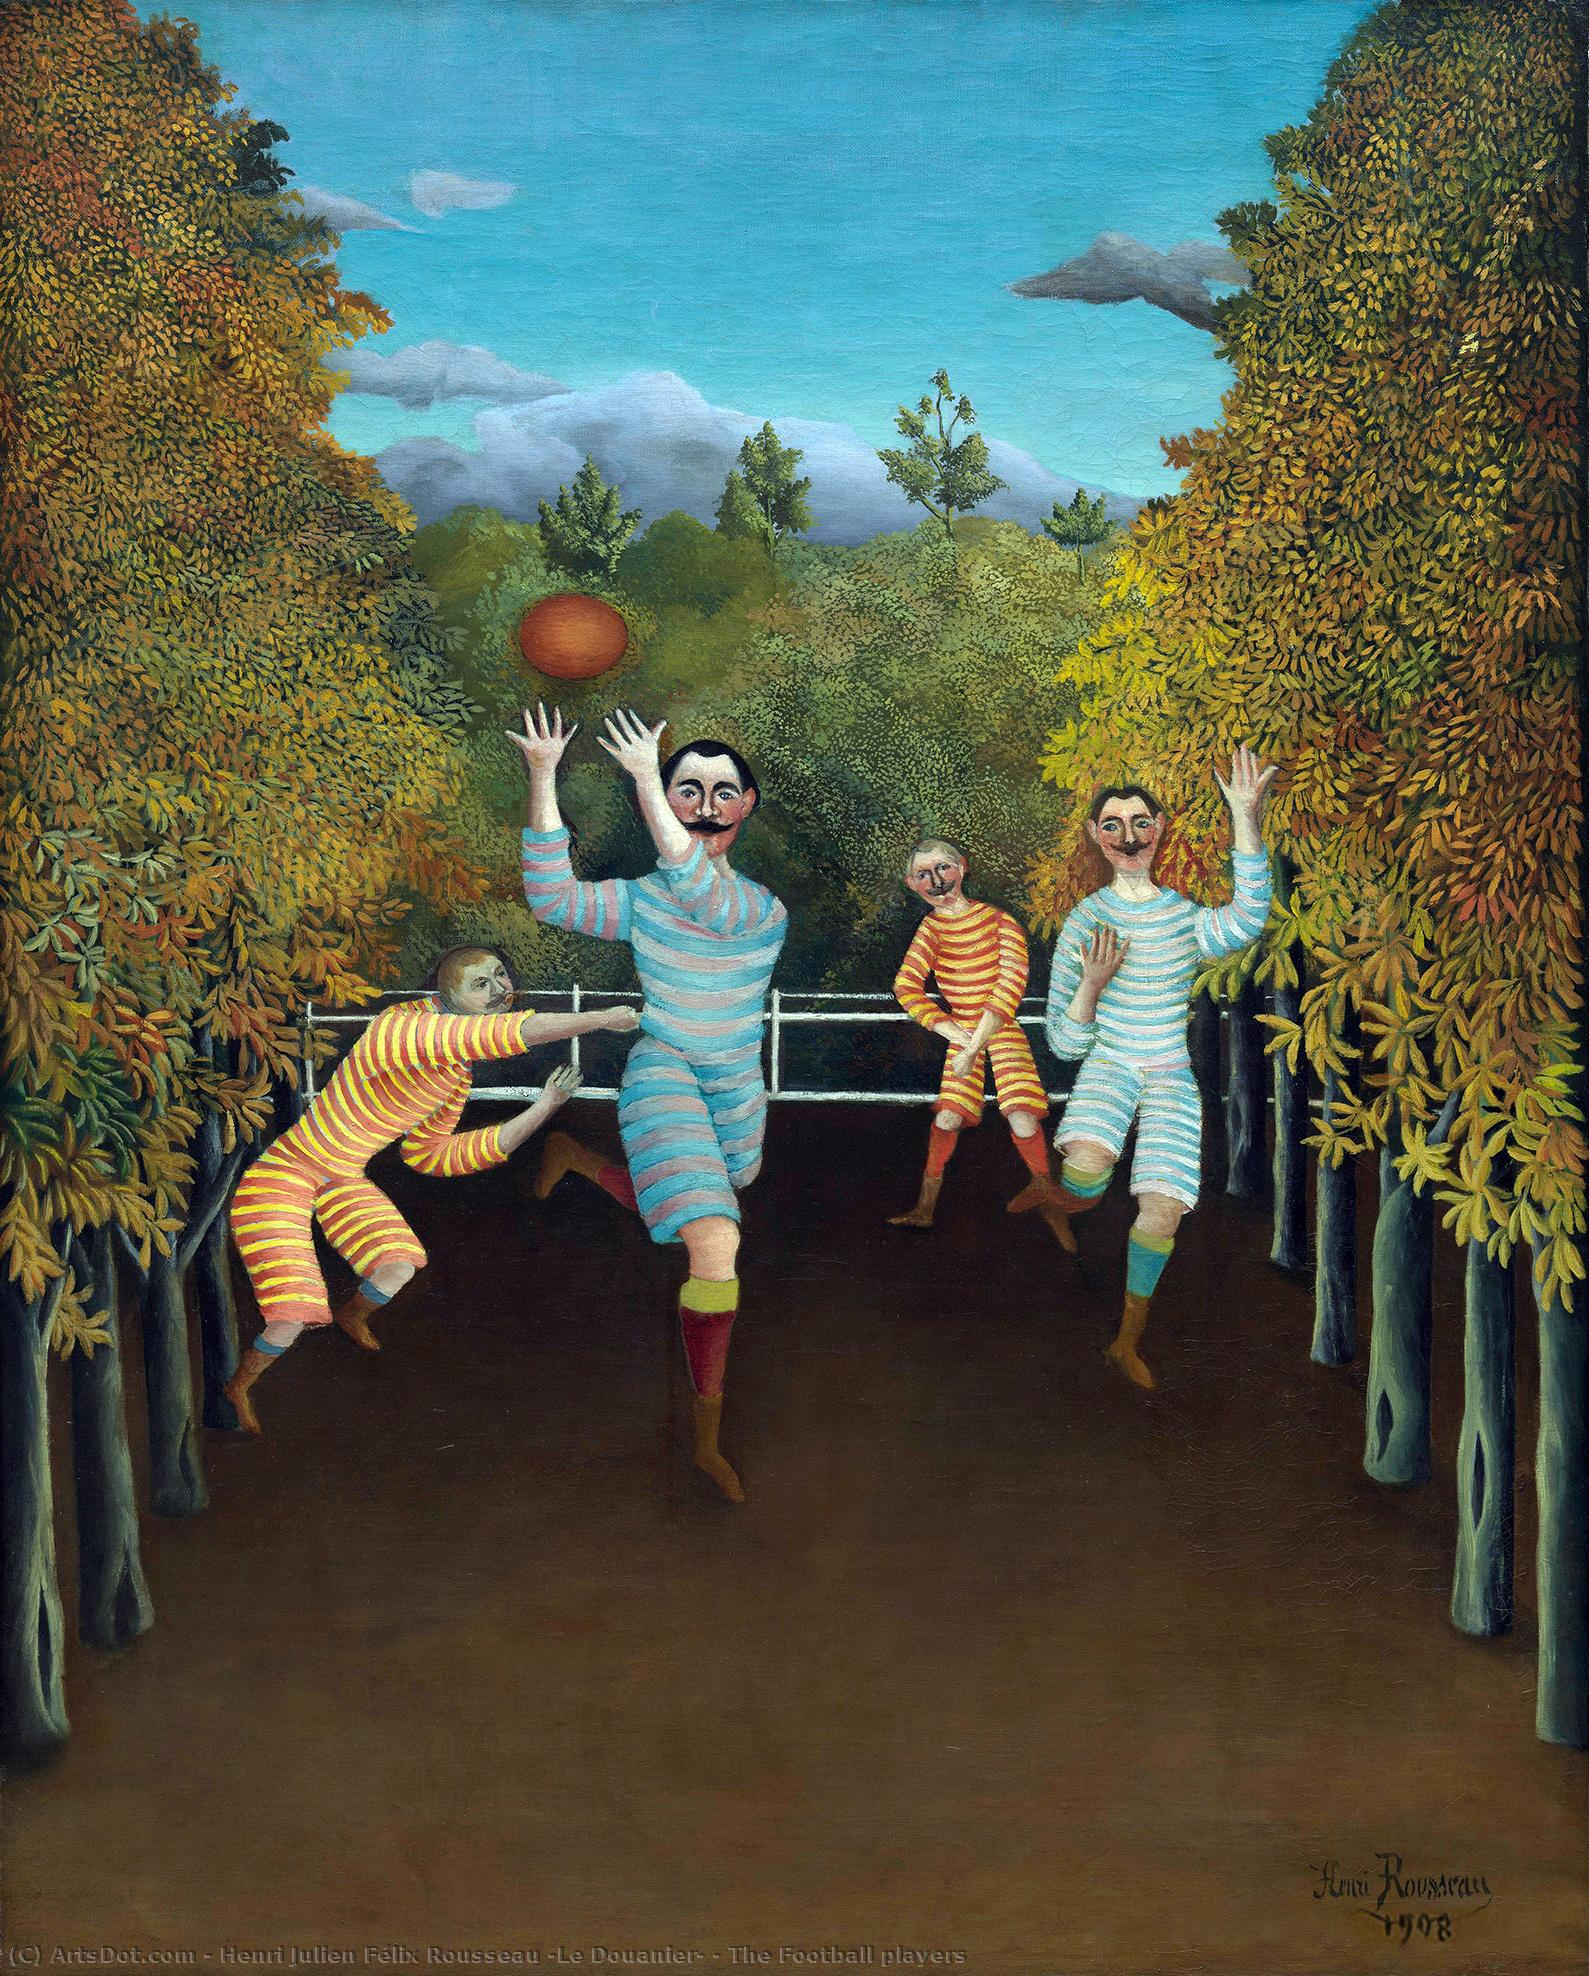 Wikioo.org - The Encyclopedia of Fine Arts - Painting, Artwork by Henri Julien Félix Rousseau (Le Douanier) - The Football players